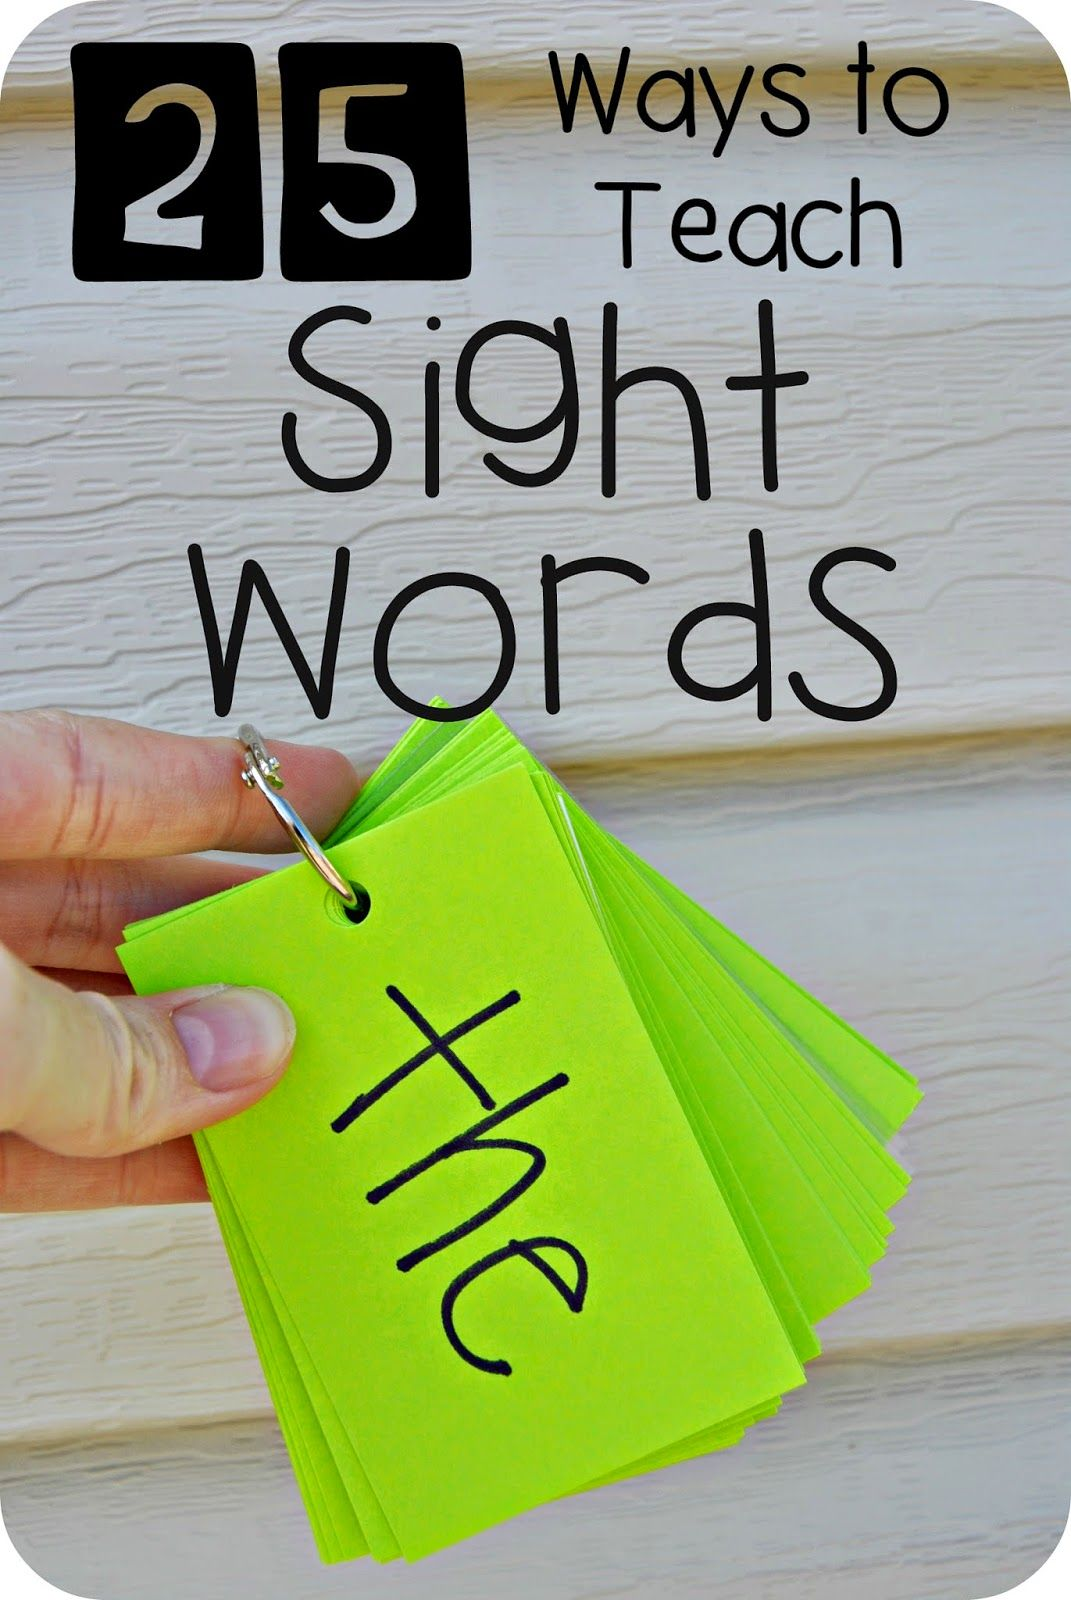 25 Ways To Teach Sight Words! I Like 4. 18 And 21 For